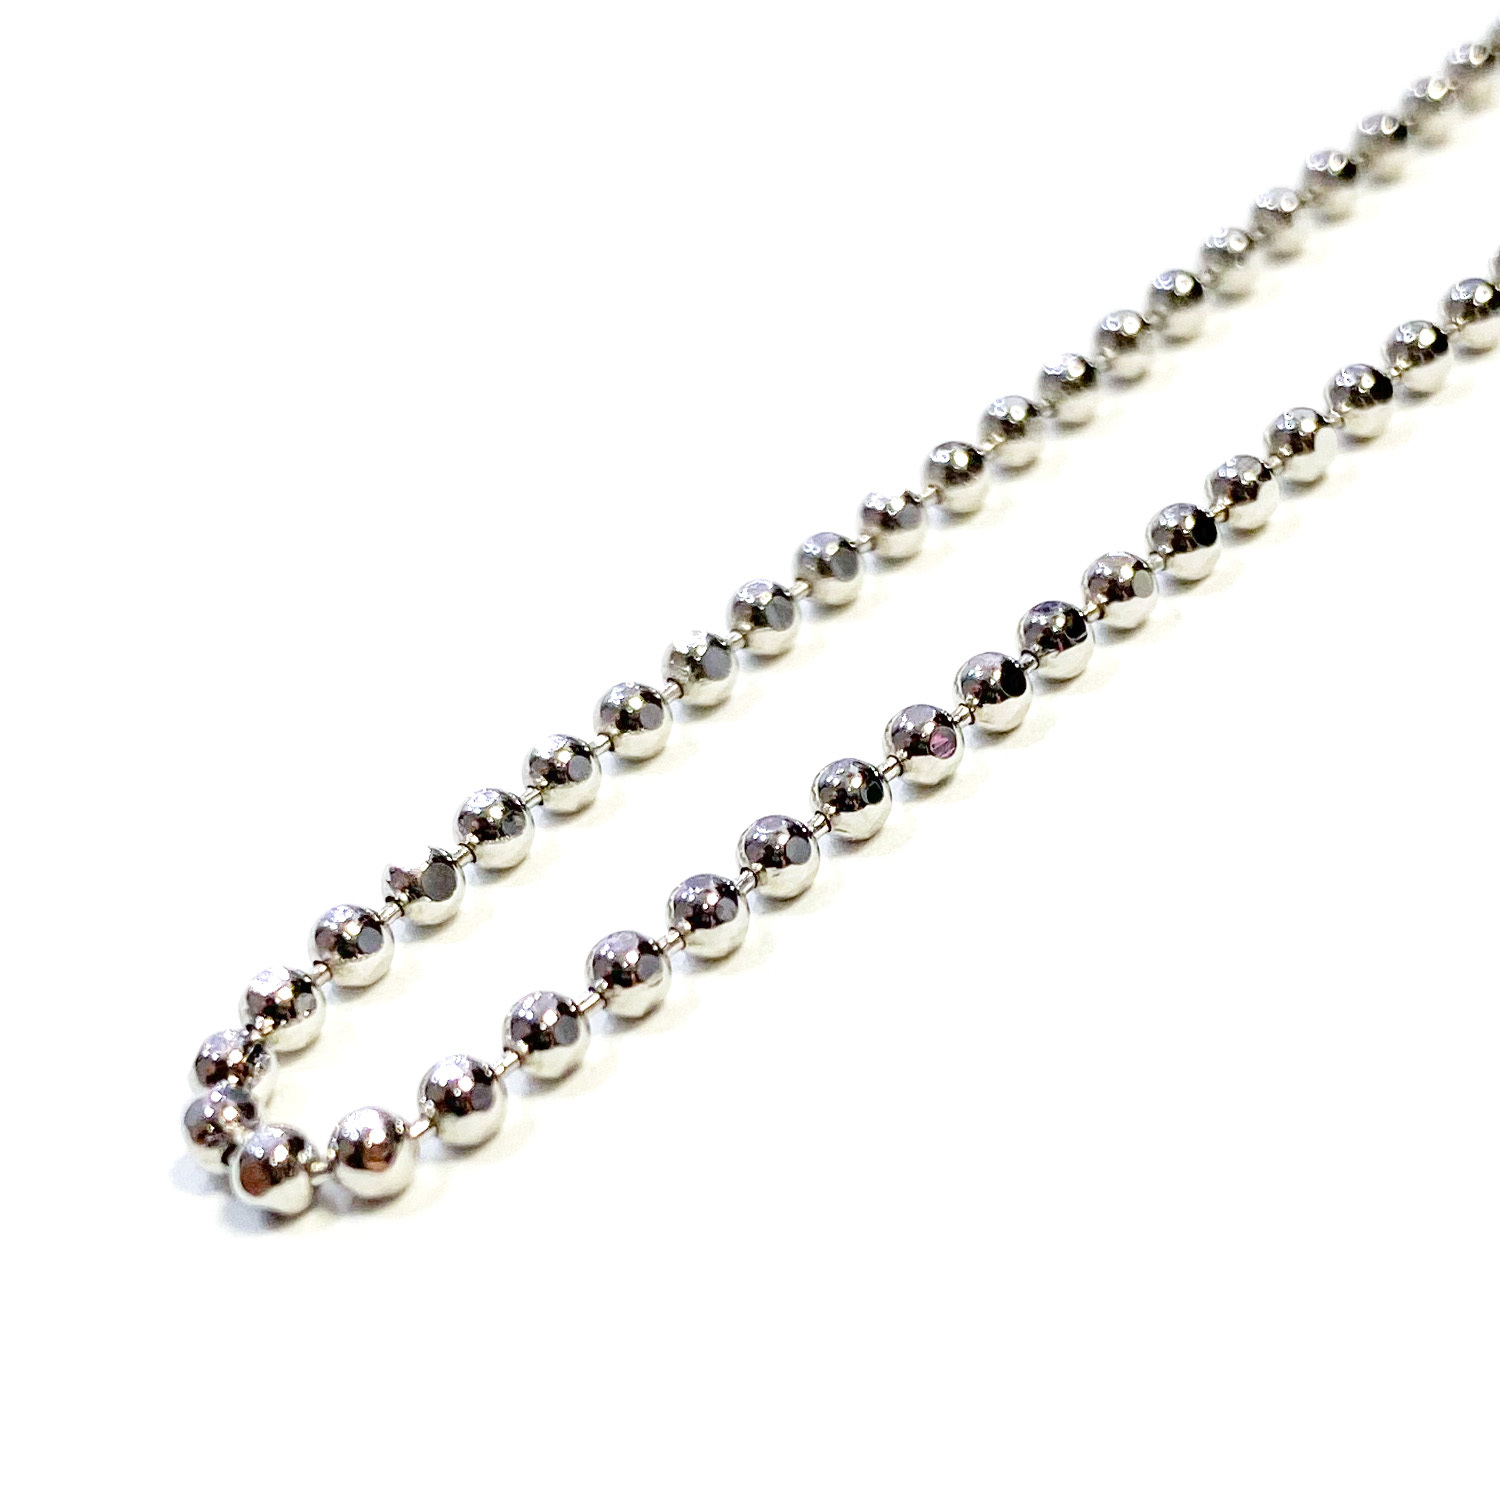 SPARKING Cutting Ball Chain Necklace SILVER